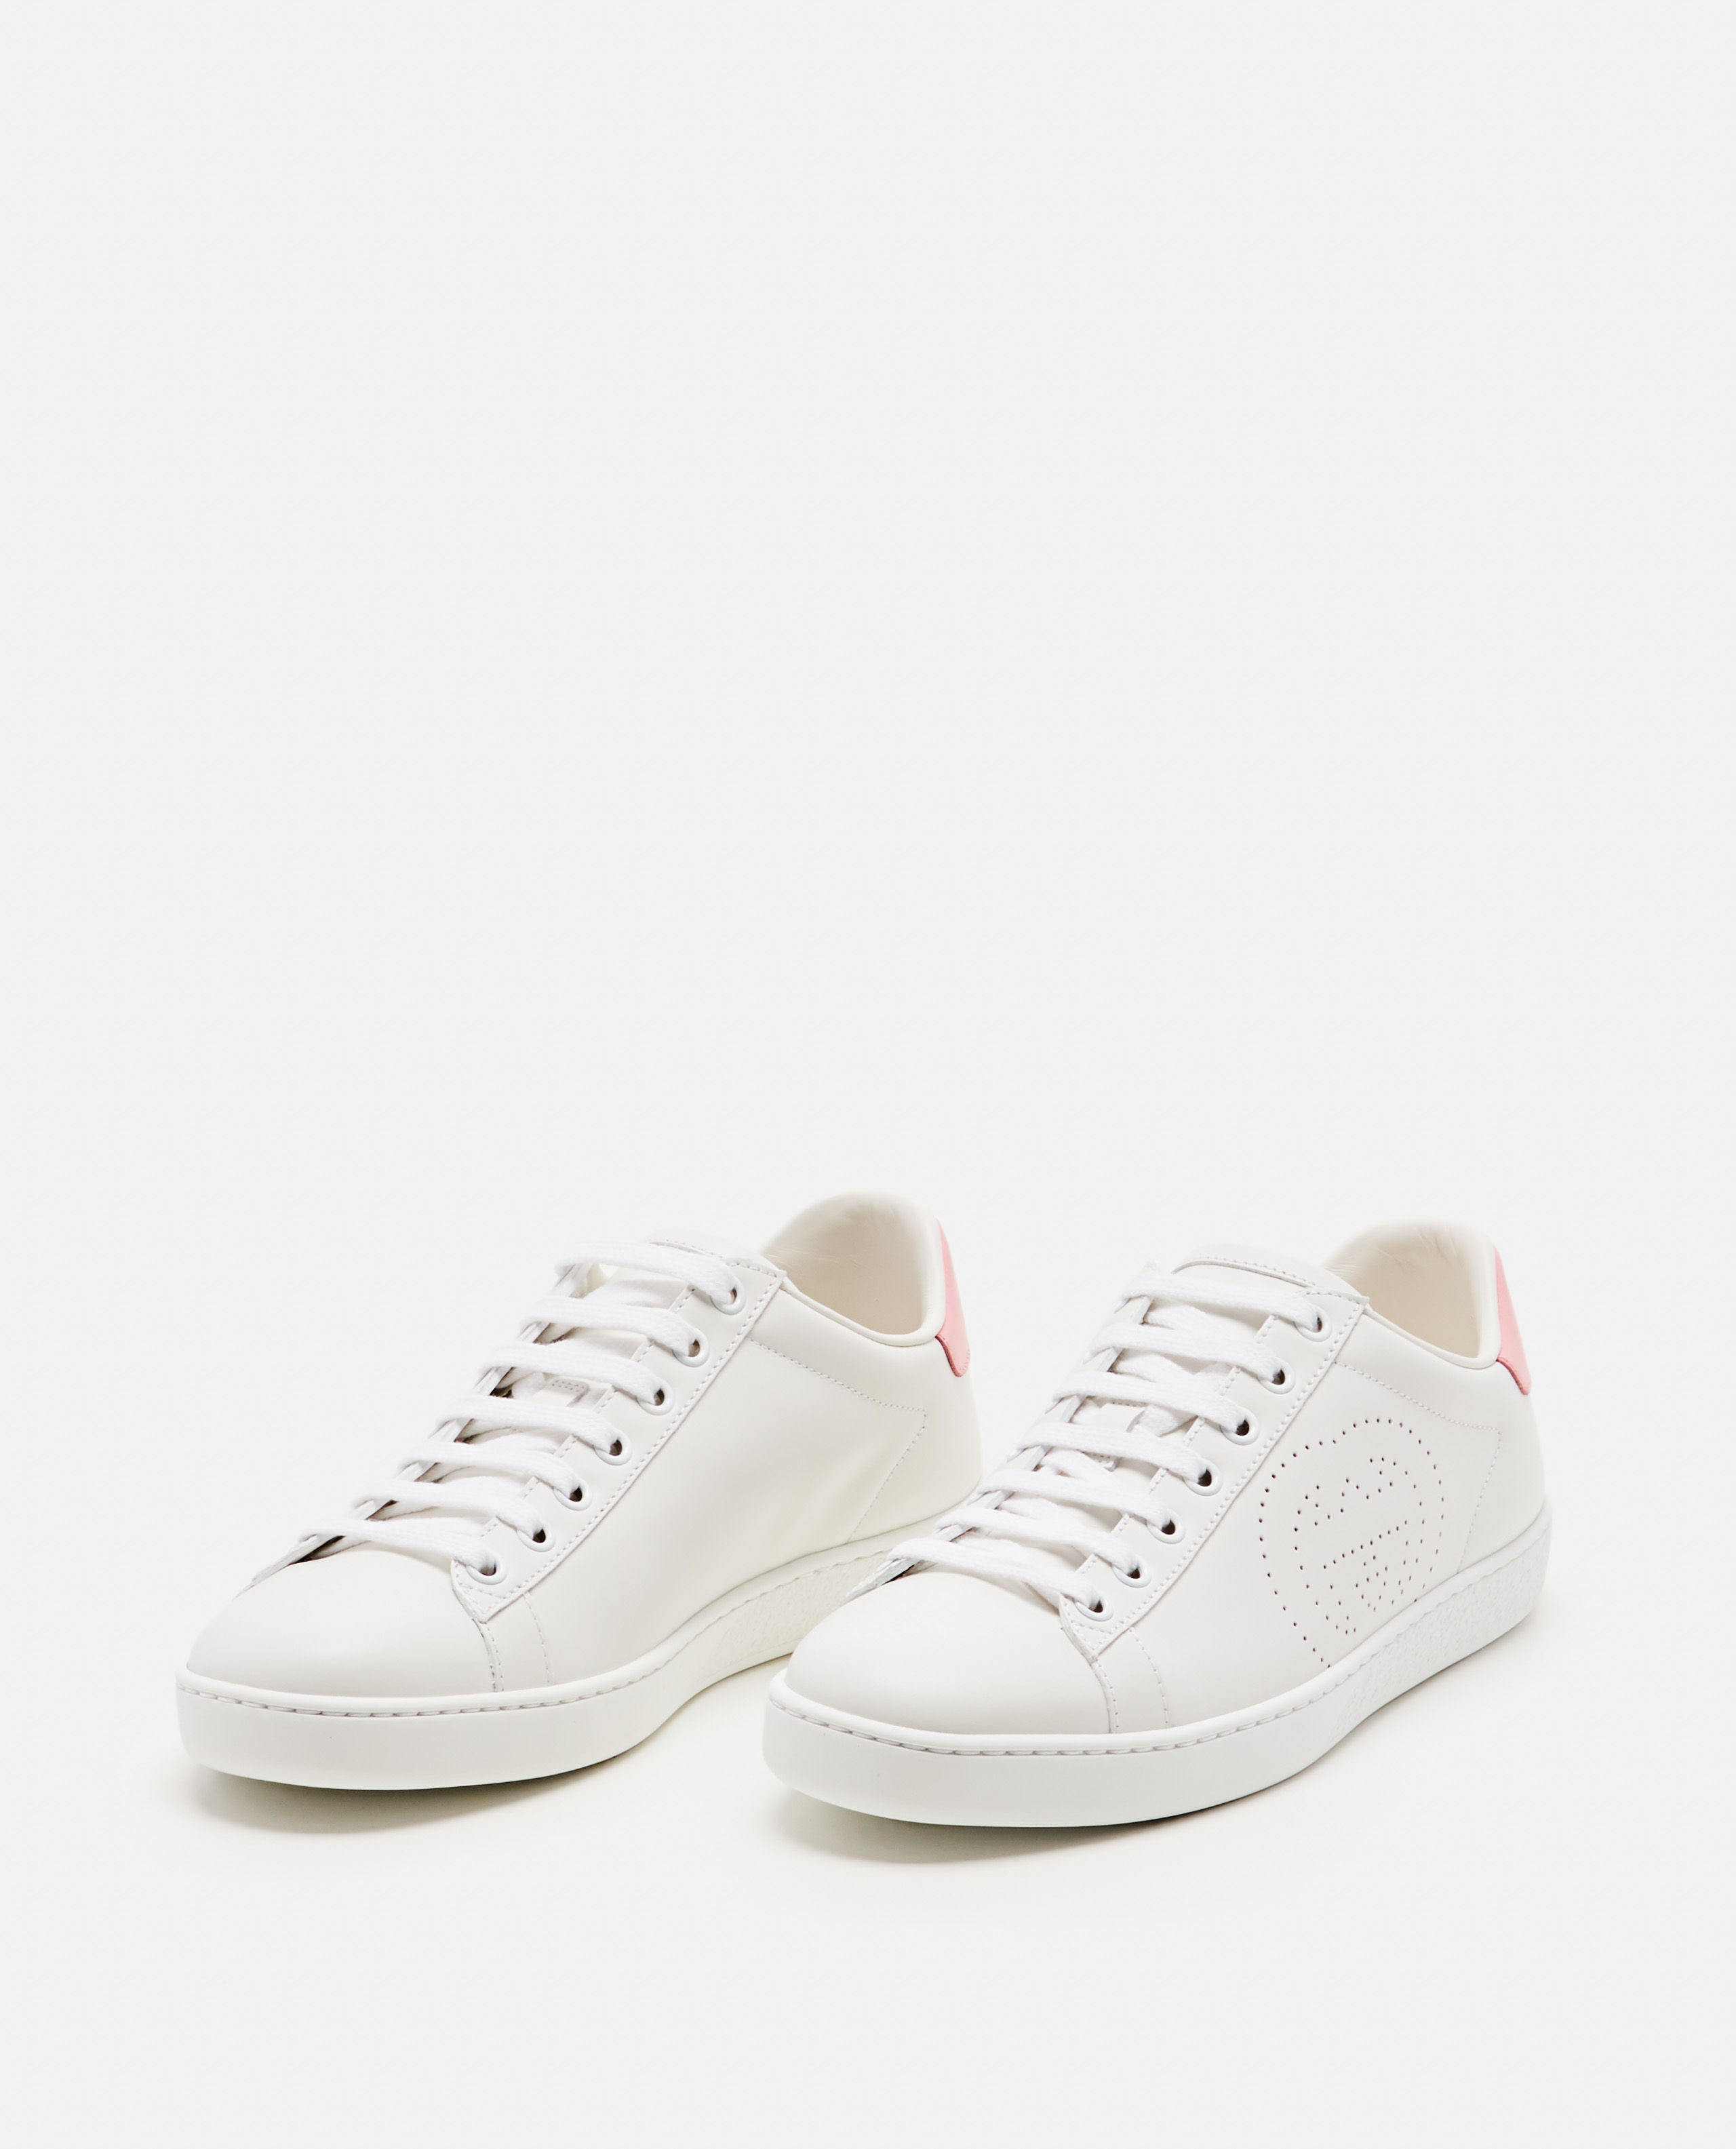 Ace women's sneaker with GG